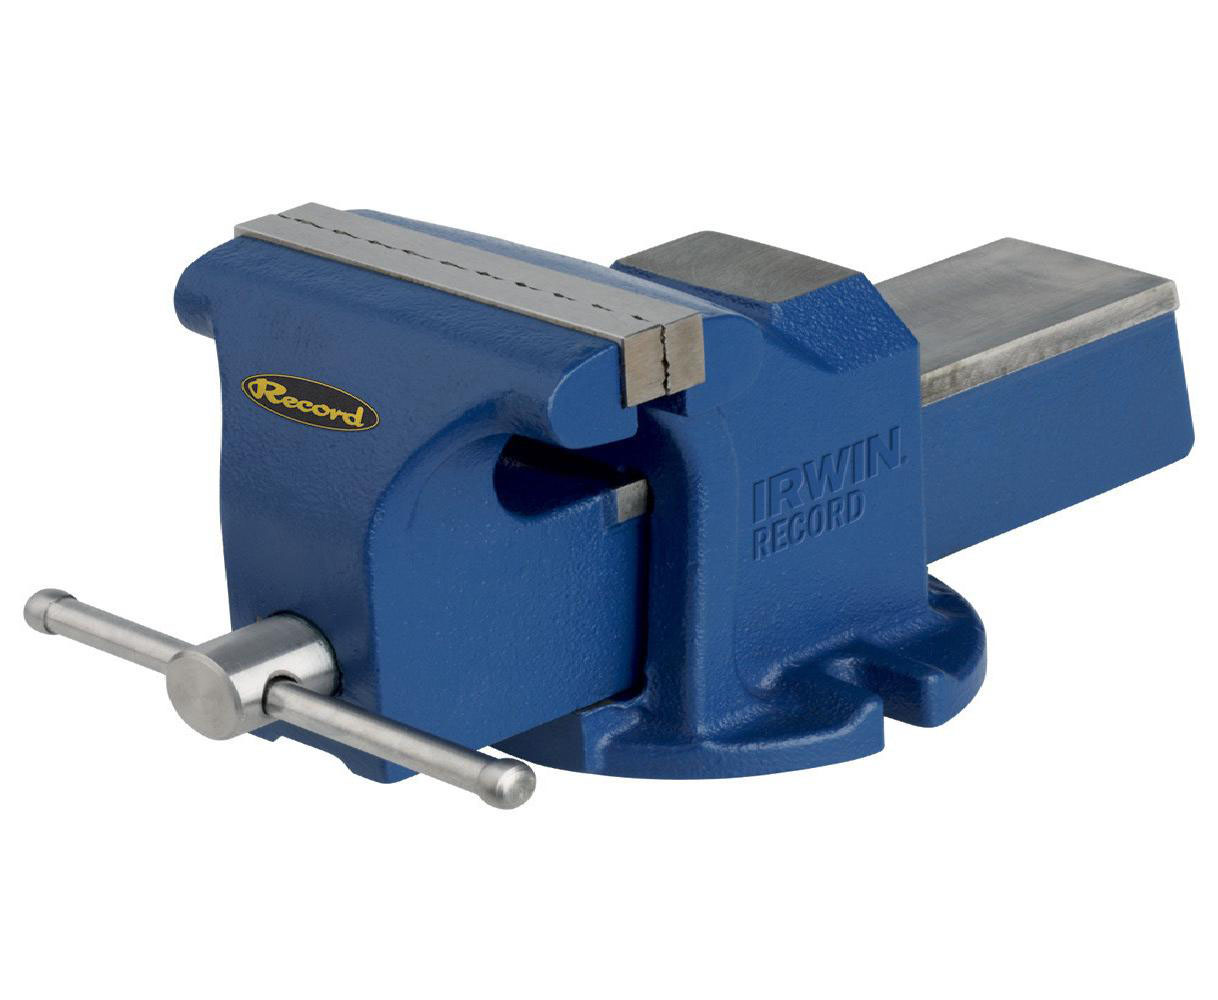 IRWIN T41211000 - Record 1Ton-E Workshop Vice 4-inch